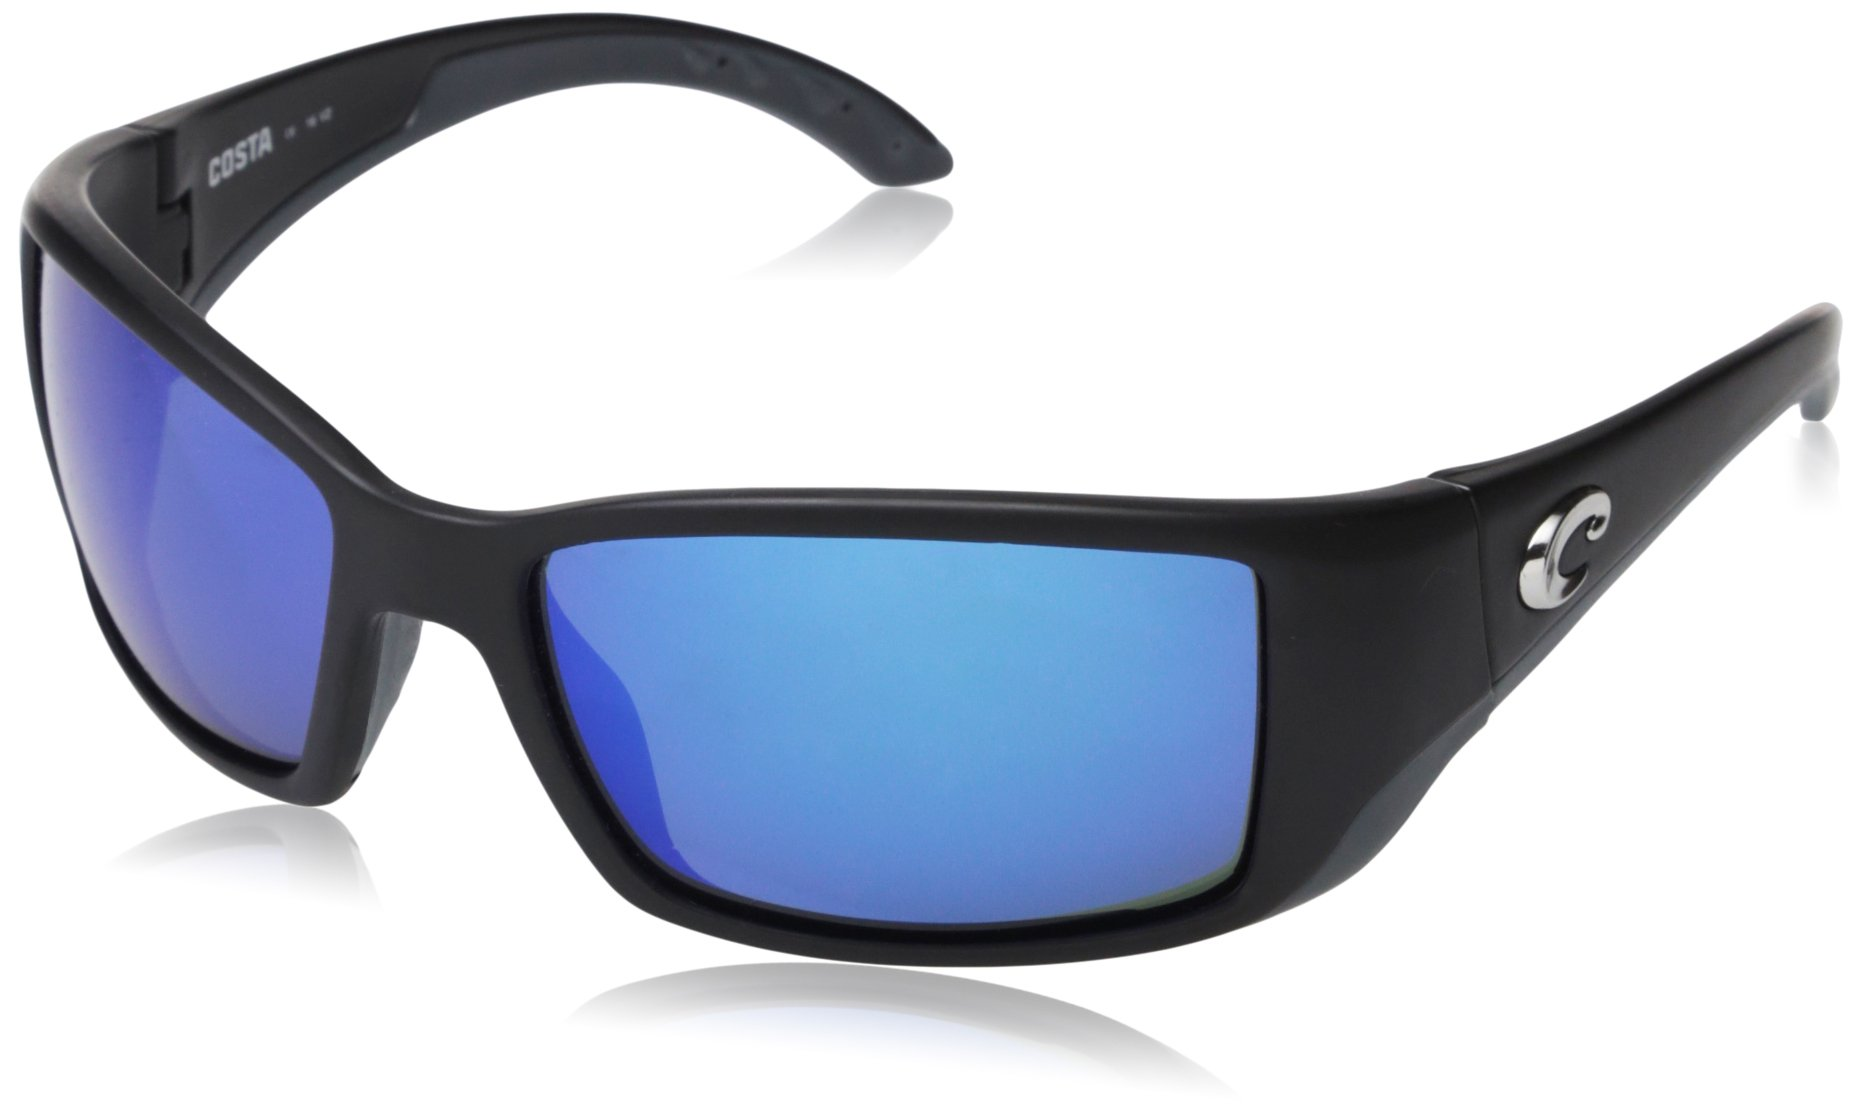 Costa del Mar Unisex-Adult Blackfin BL 11 OBMGLP Polarized Iridium Wrap Sunglasses, Matte Black, 61.5 mm by Costa Del Mar